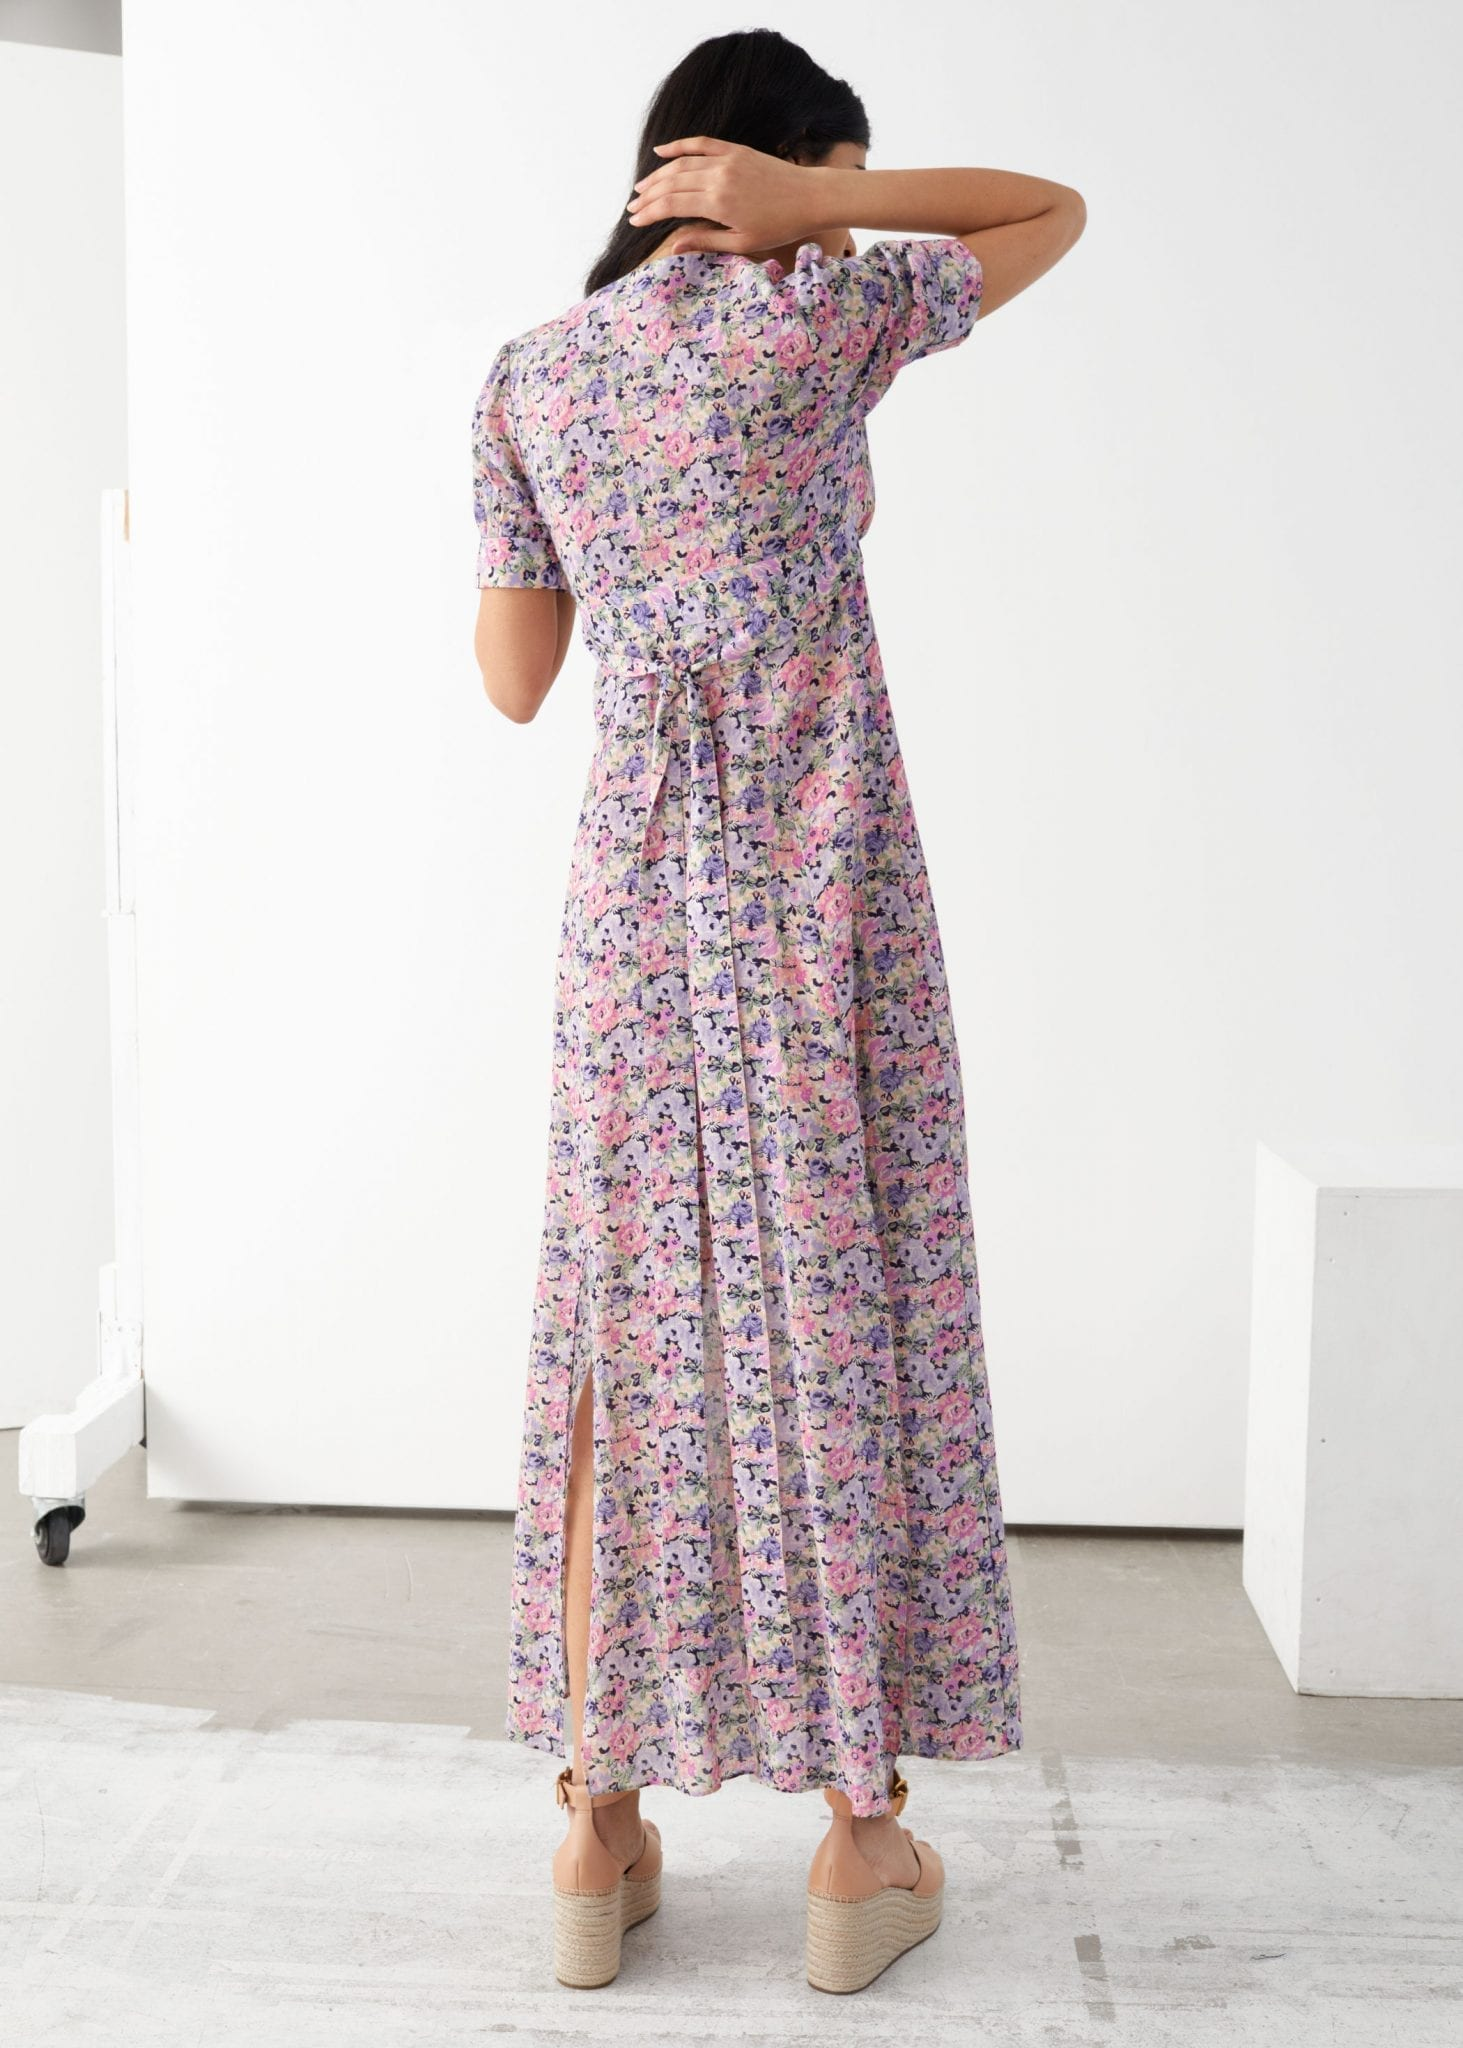 OTHER STORIES Floral Print Maxi Dress